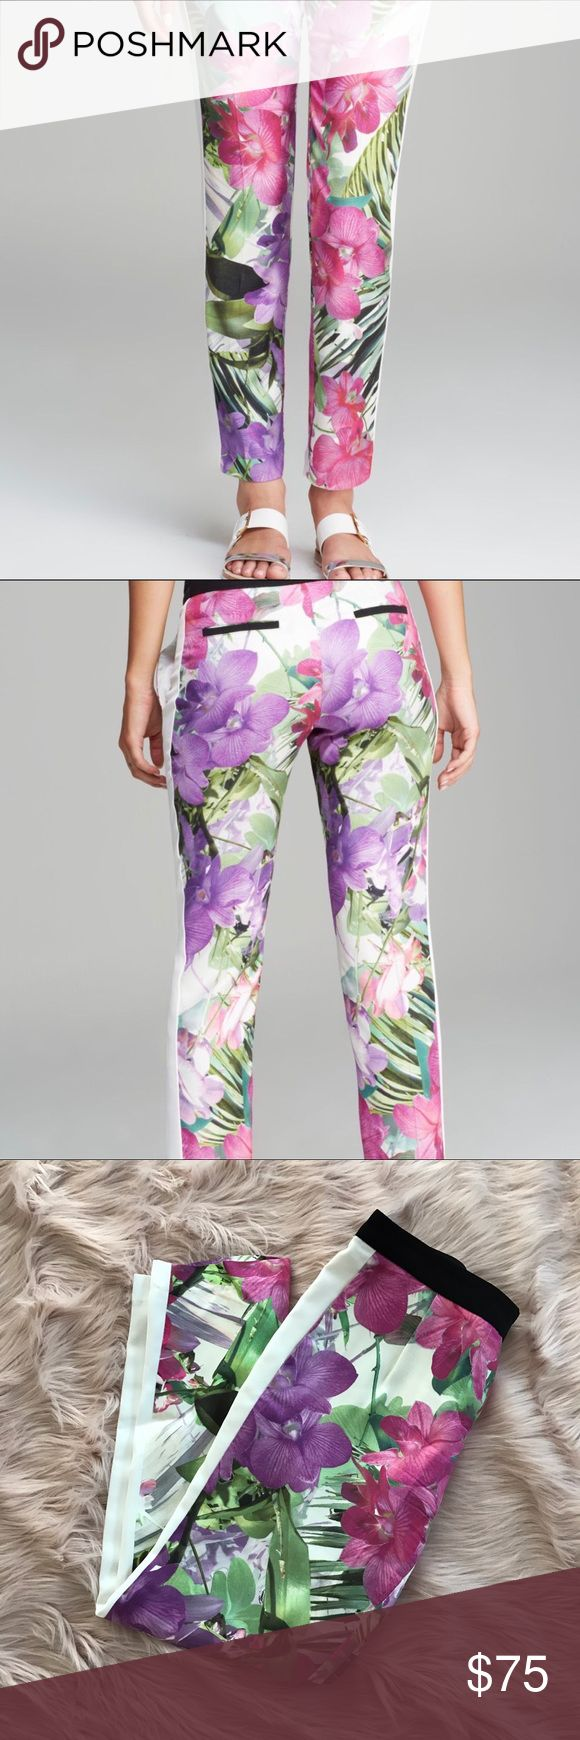 Trina Turk floral pants size 6 Incredibly chic Trina Turk floral tuxedo pants. The PERFECT spring pant 🦄 Size 6 100% rayon, made in the USA. perfect for special occasions when you don't want to wear a dress #datenight?  💘. Trina Turk Pants